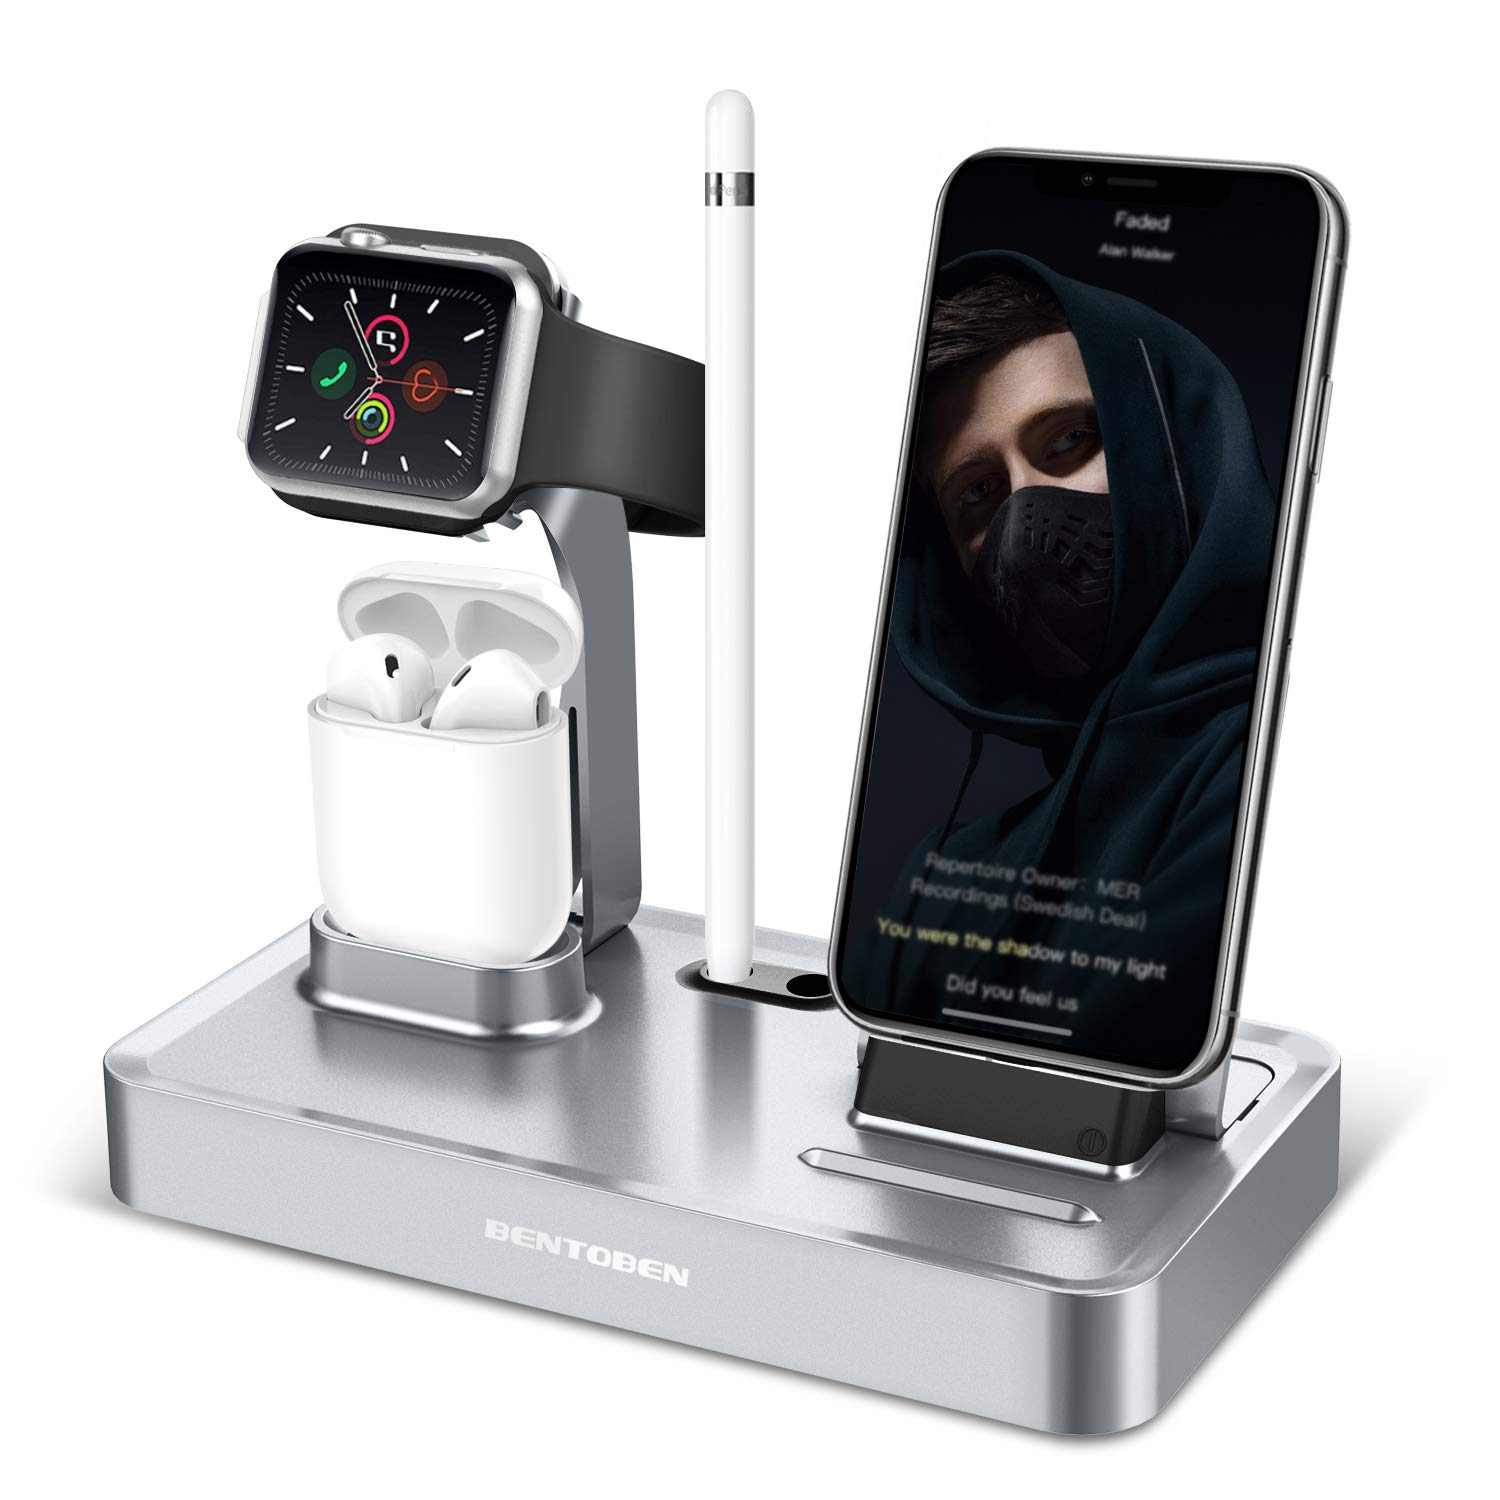 BENTOBEN Phone Stand, Apple Watch Stand, Titular de Carga Holder ...